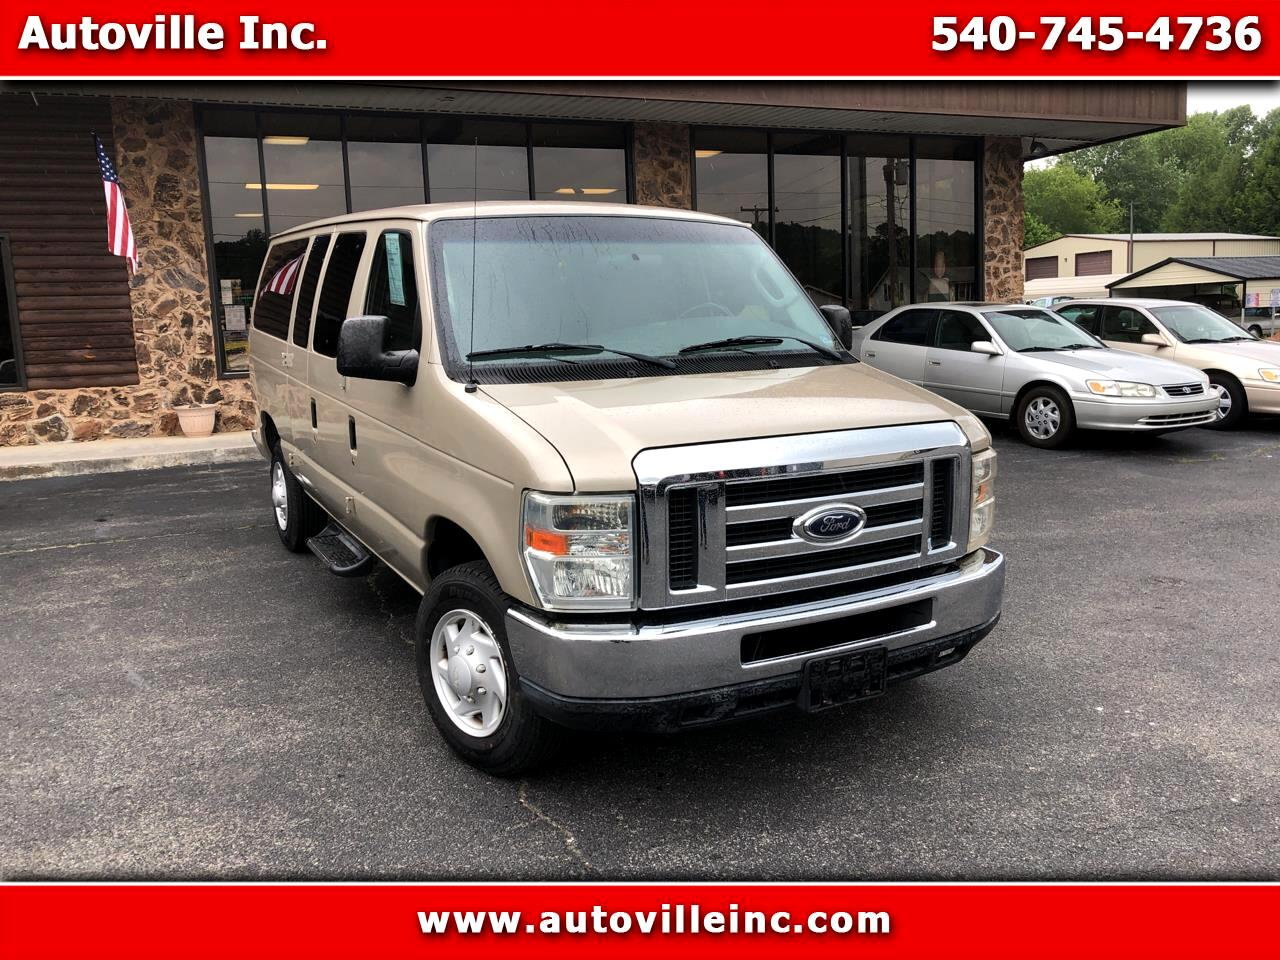 2008 Ford Econoline E-350 XLT Super Duty Extended